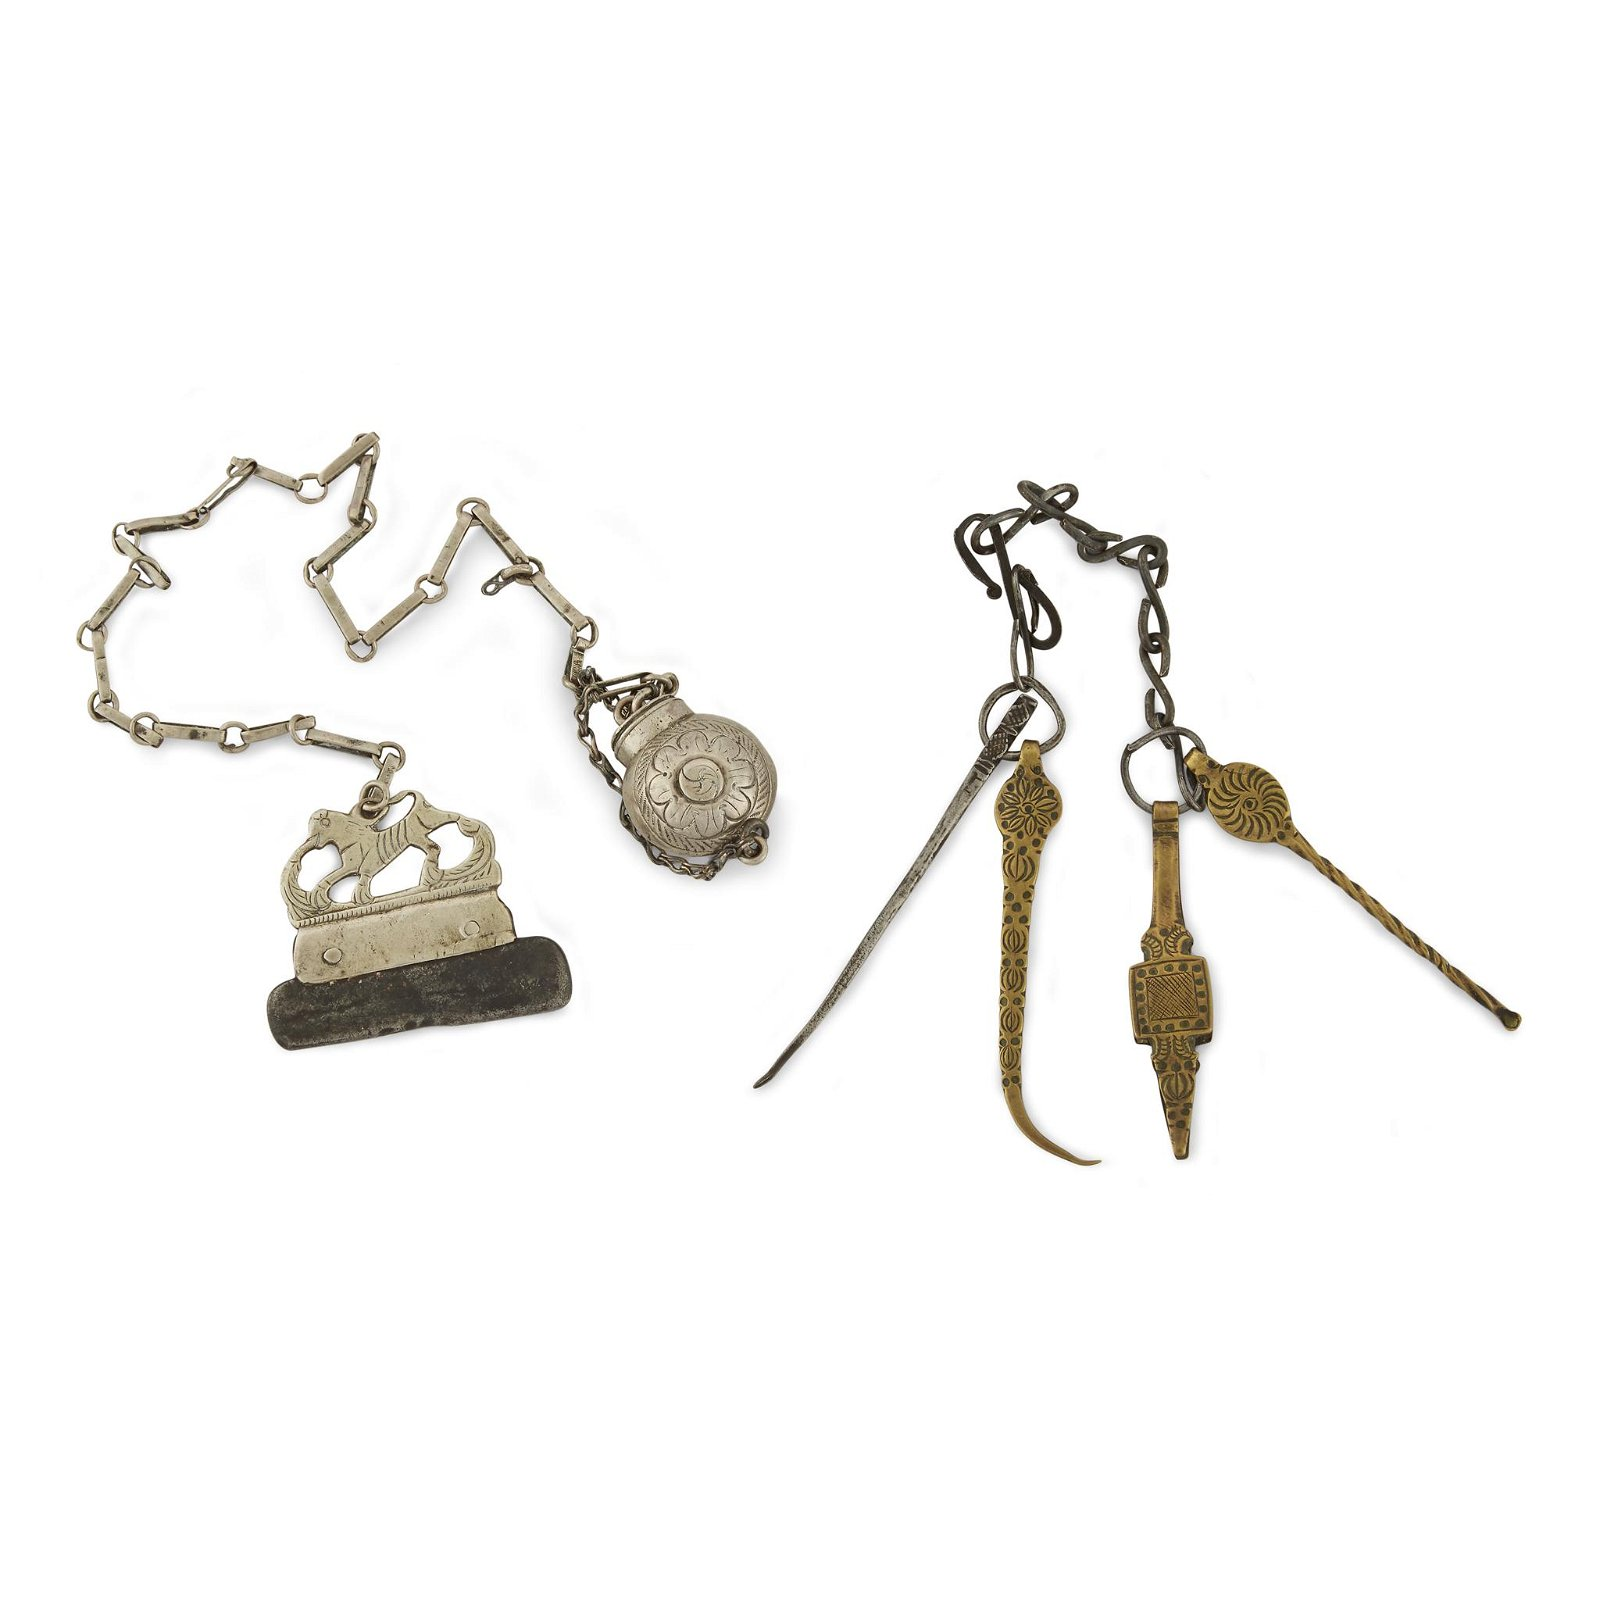 Two silver, brass, and iron chatelaines, Possibly